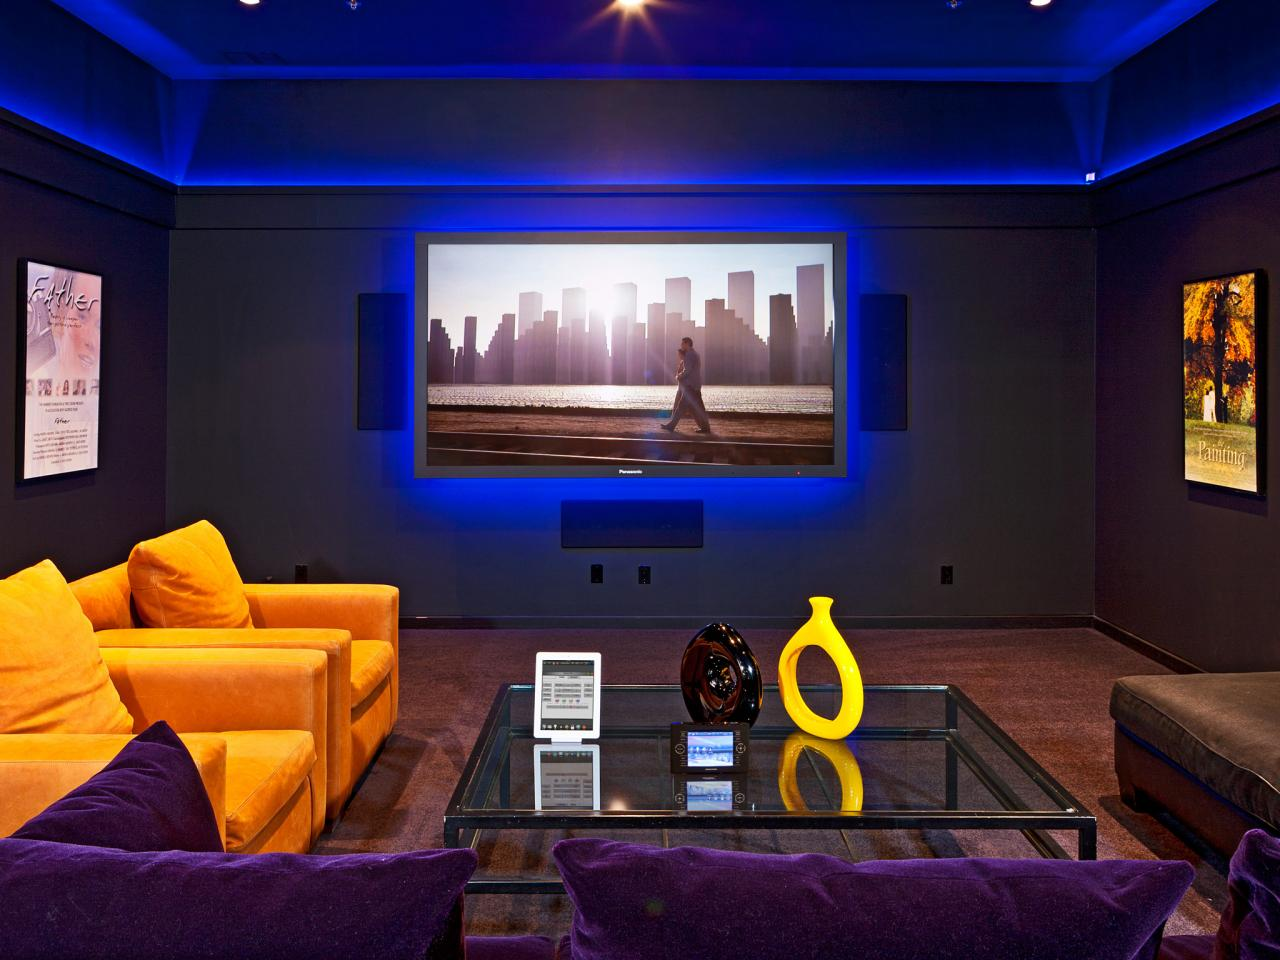 designer home theaters and media rooms - Home Theater Rooms Design Ideas